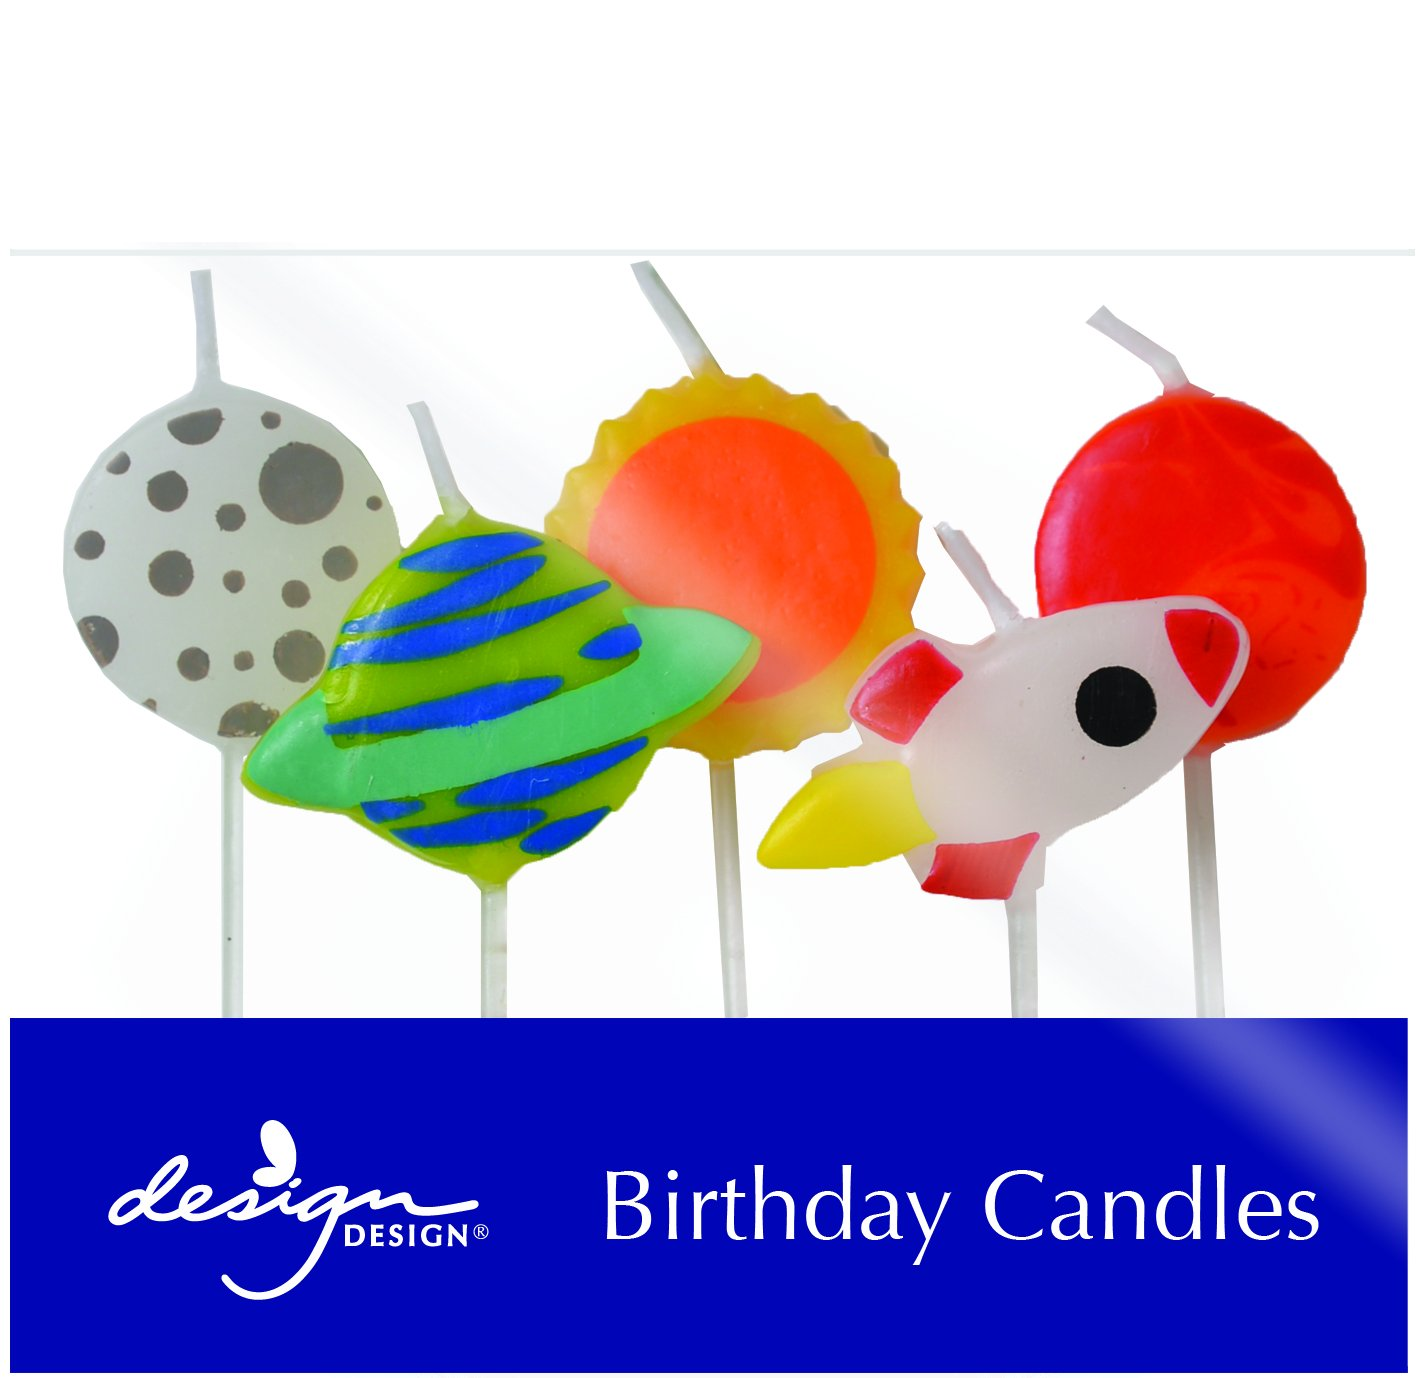 Design Design Outer Space Birthday Candles, Multicolor